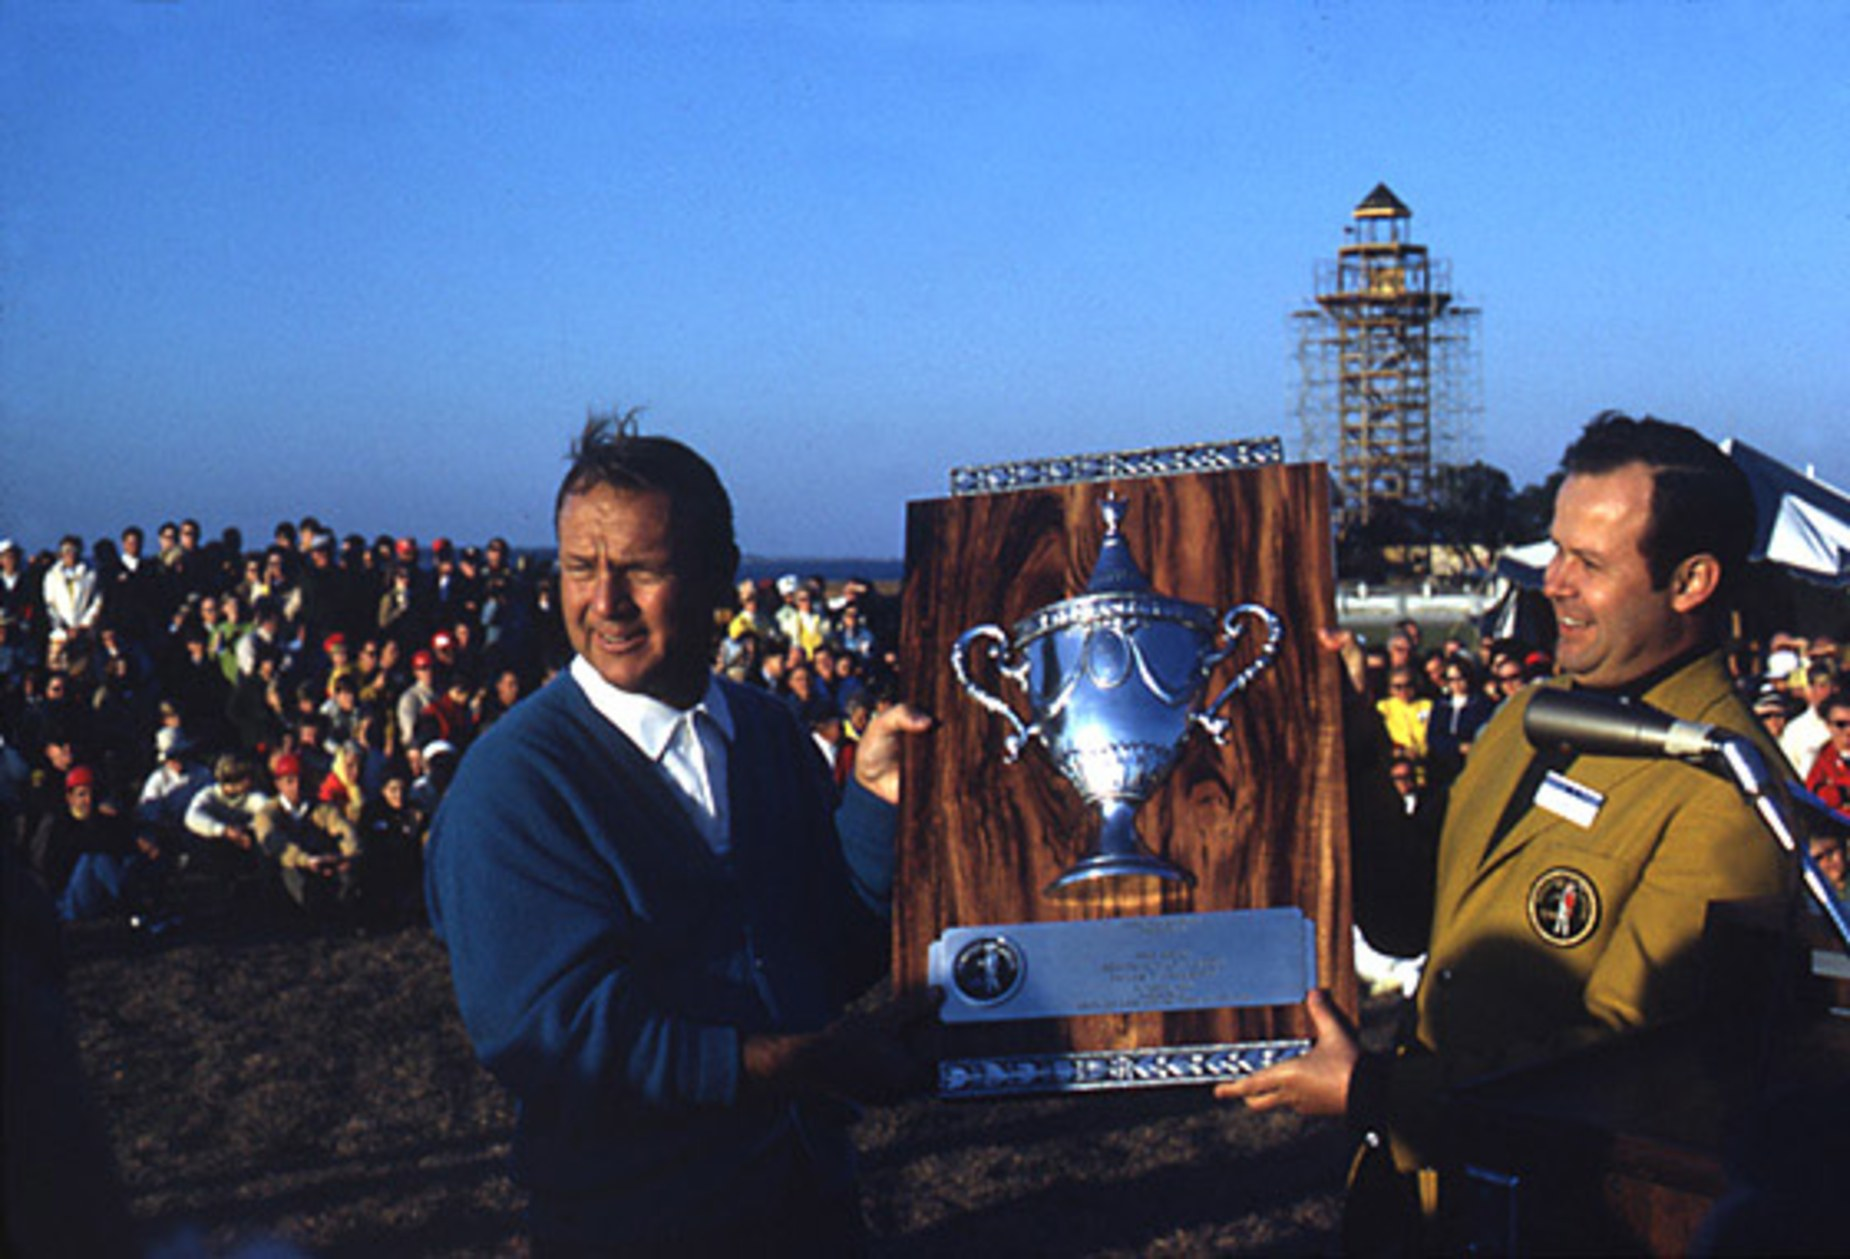 First Heritage winner Palmer, with the unfinished lighthouse in the background.